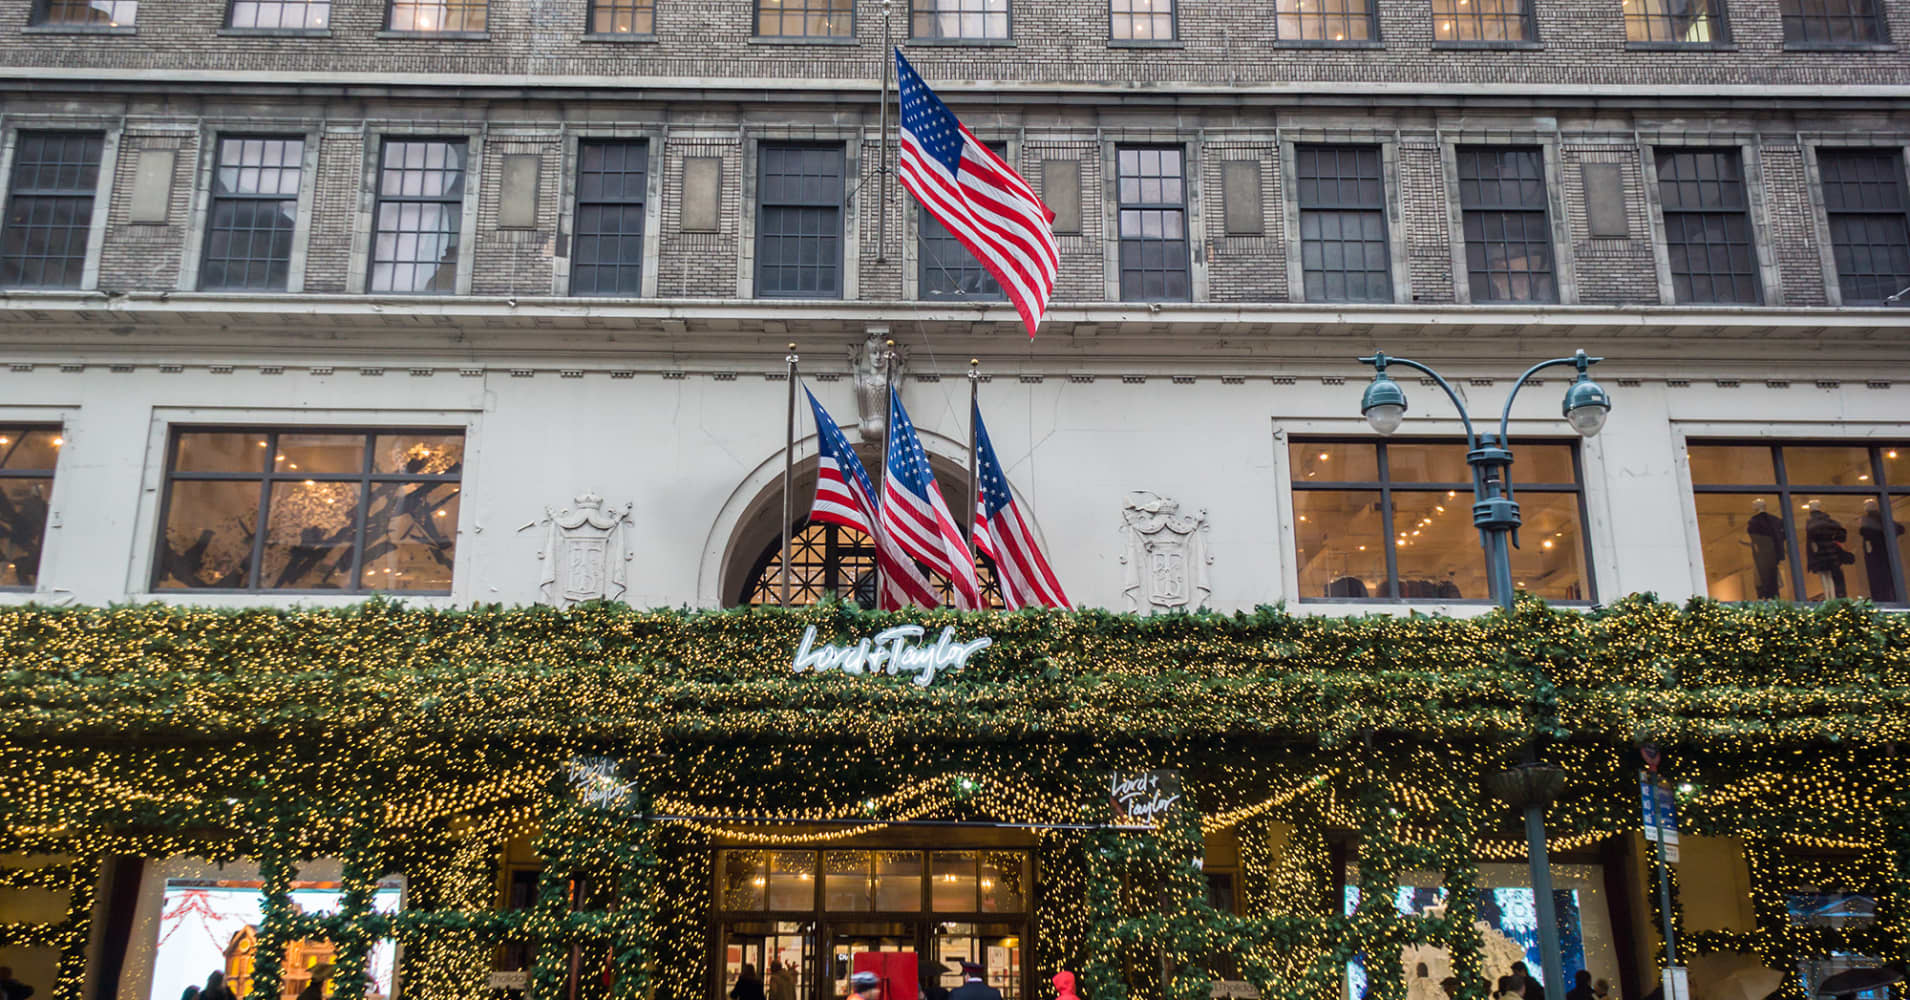 Lord & Taylor's long goodbye to Fifth Avenue is about to begin — and it may include some nice deals on cashmere sweaters and designer handbags. The upscale retailer's year-old.